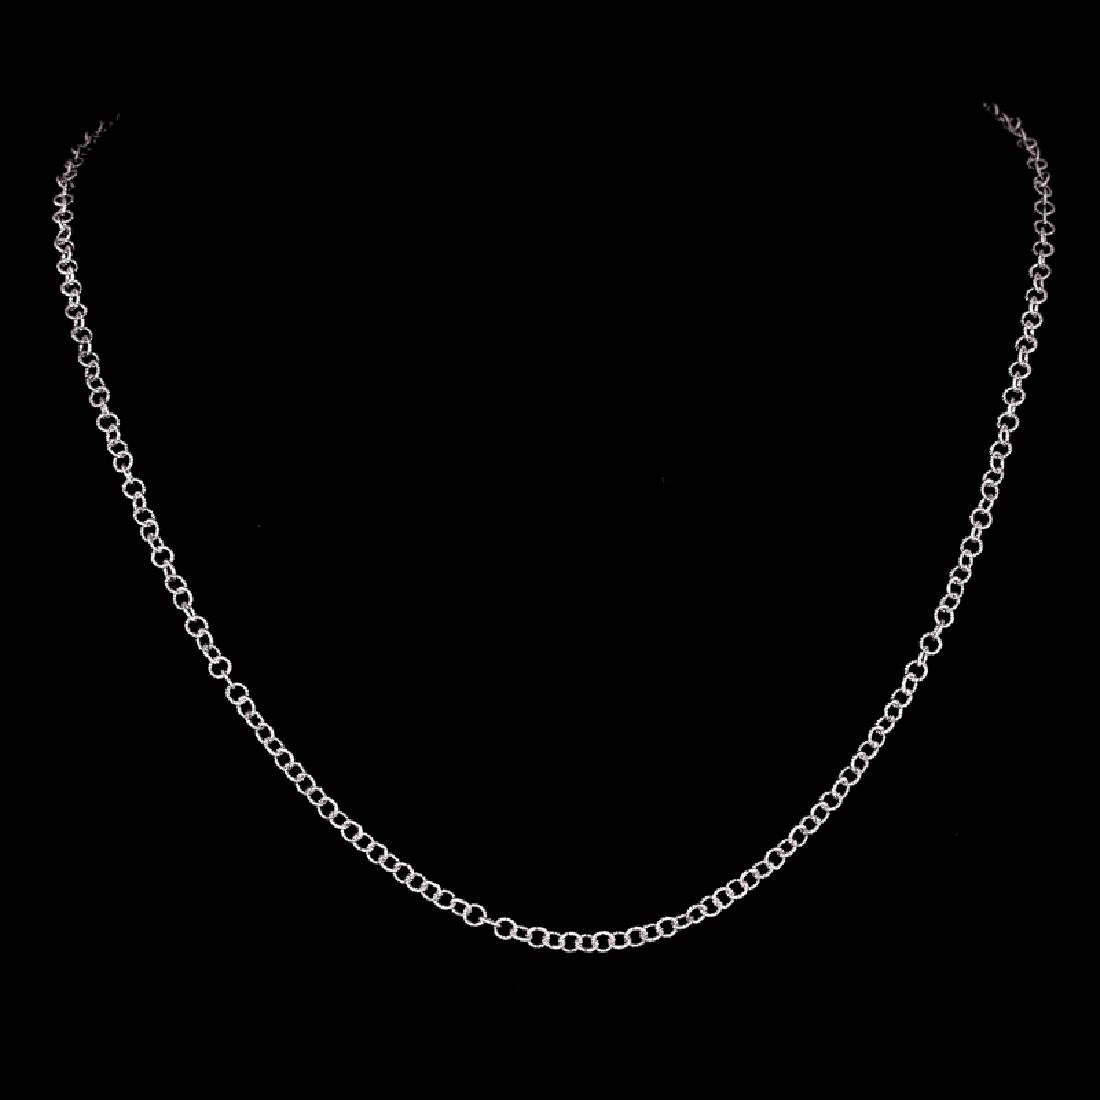 *Fine Jewelry 14 KT White Gold, 4.5GR, 18'' Medium